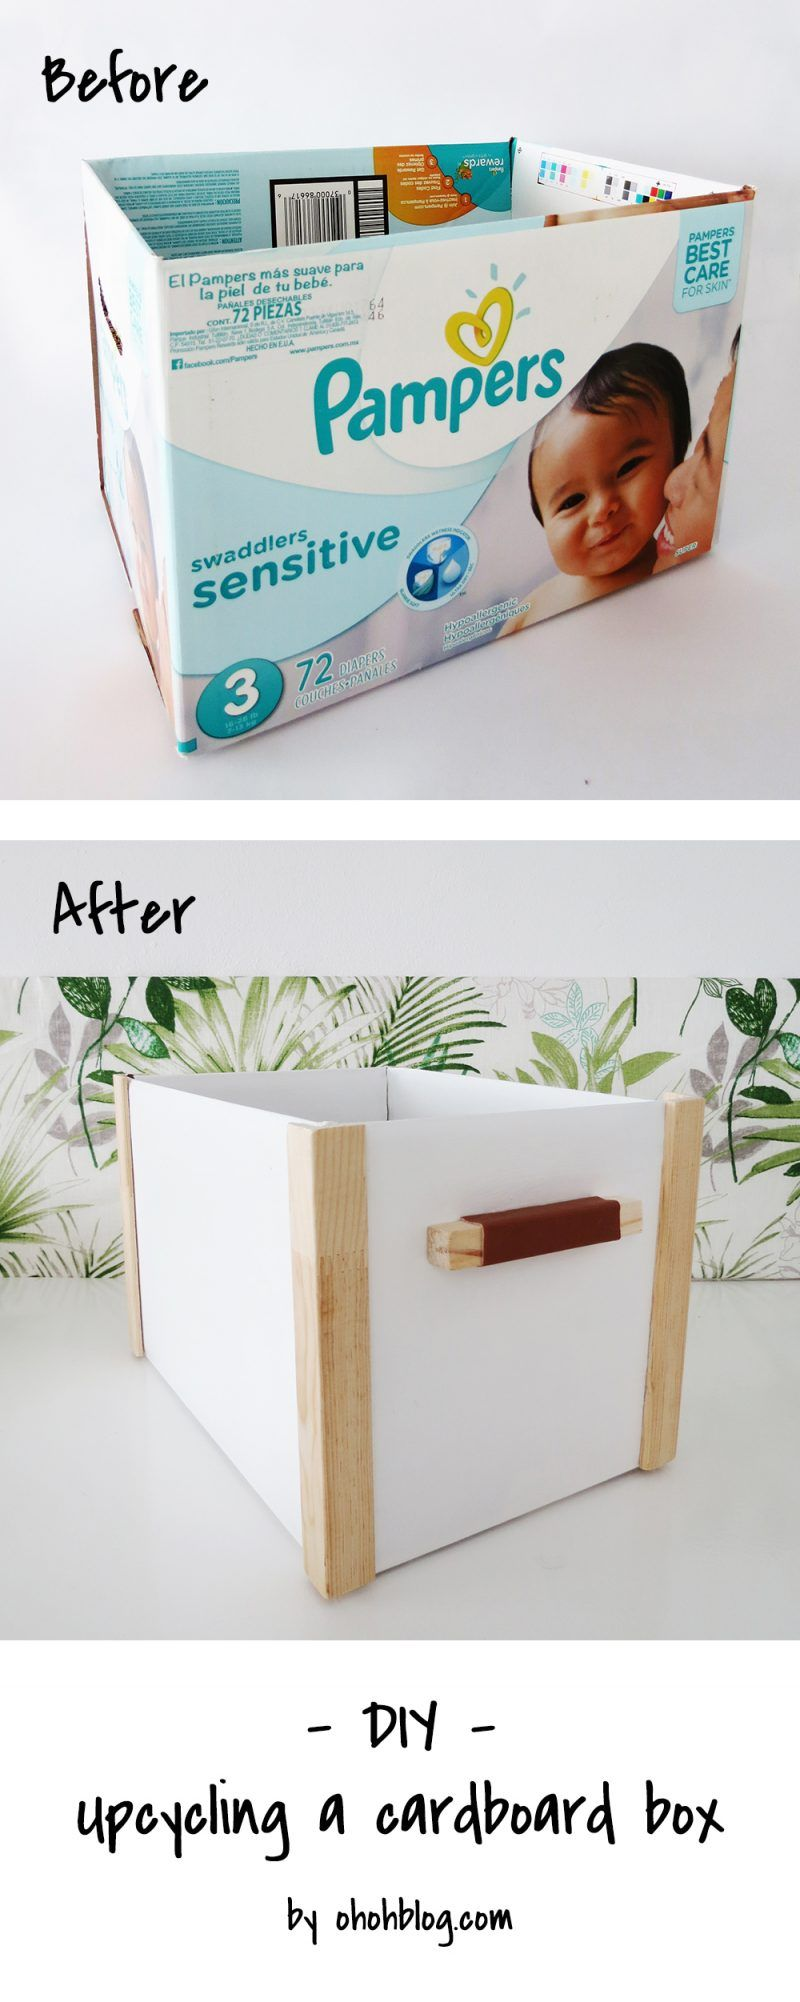 How to recycle a cardboard box upcycled furniture and crafts